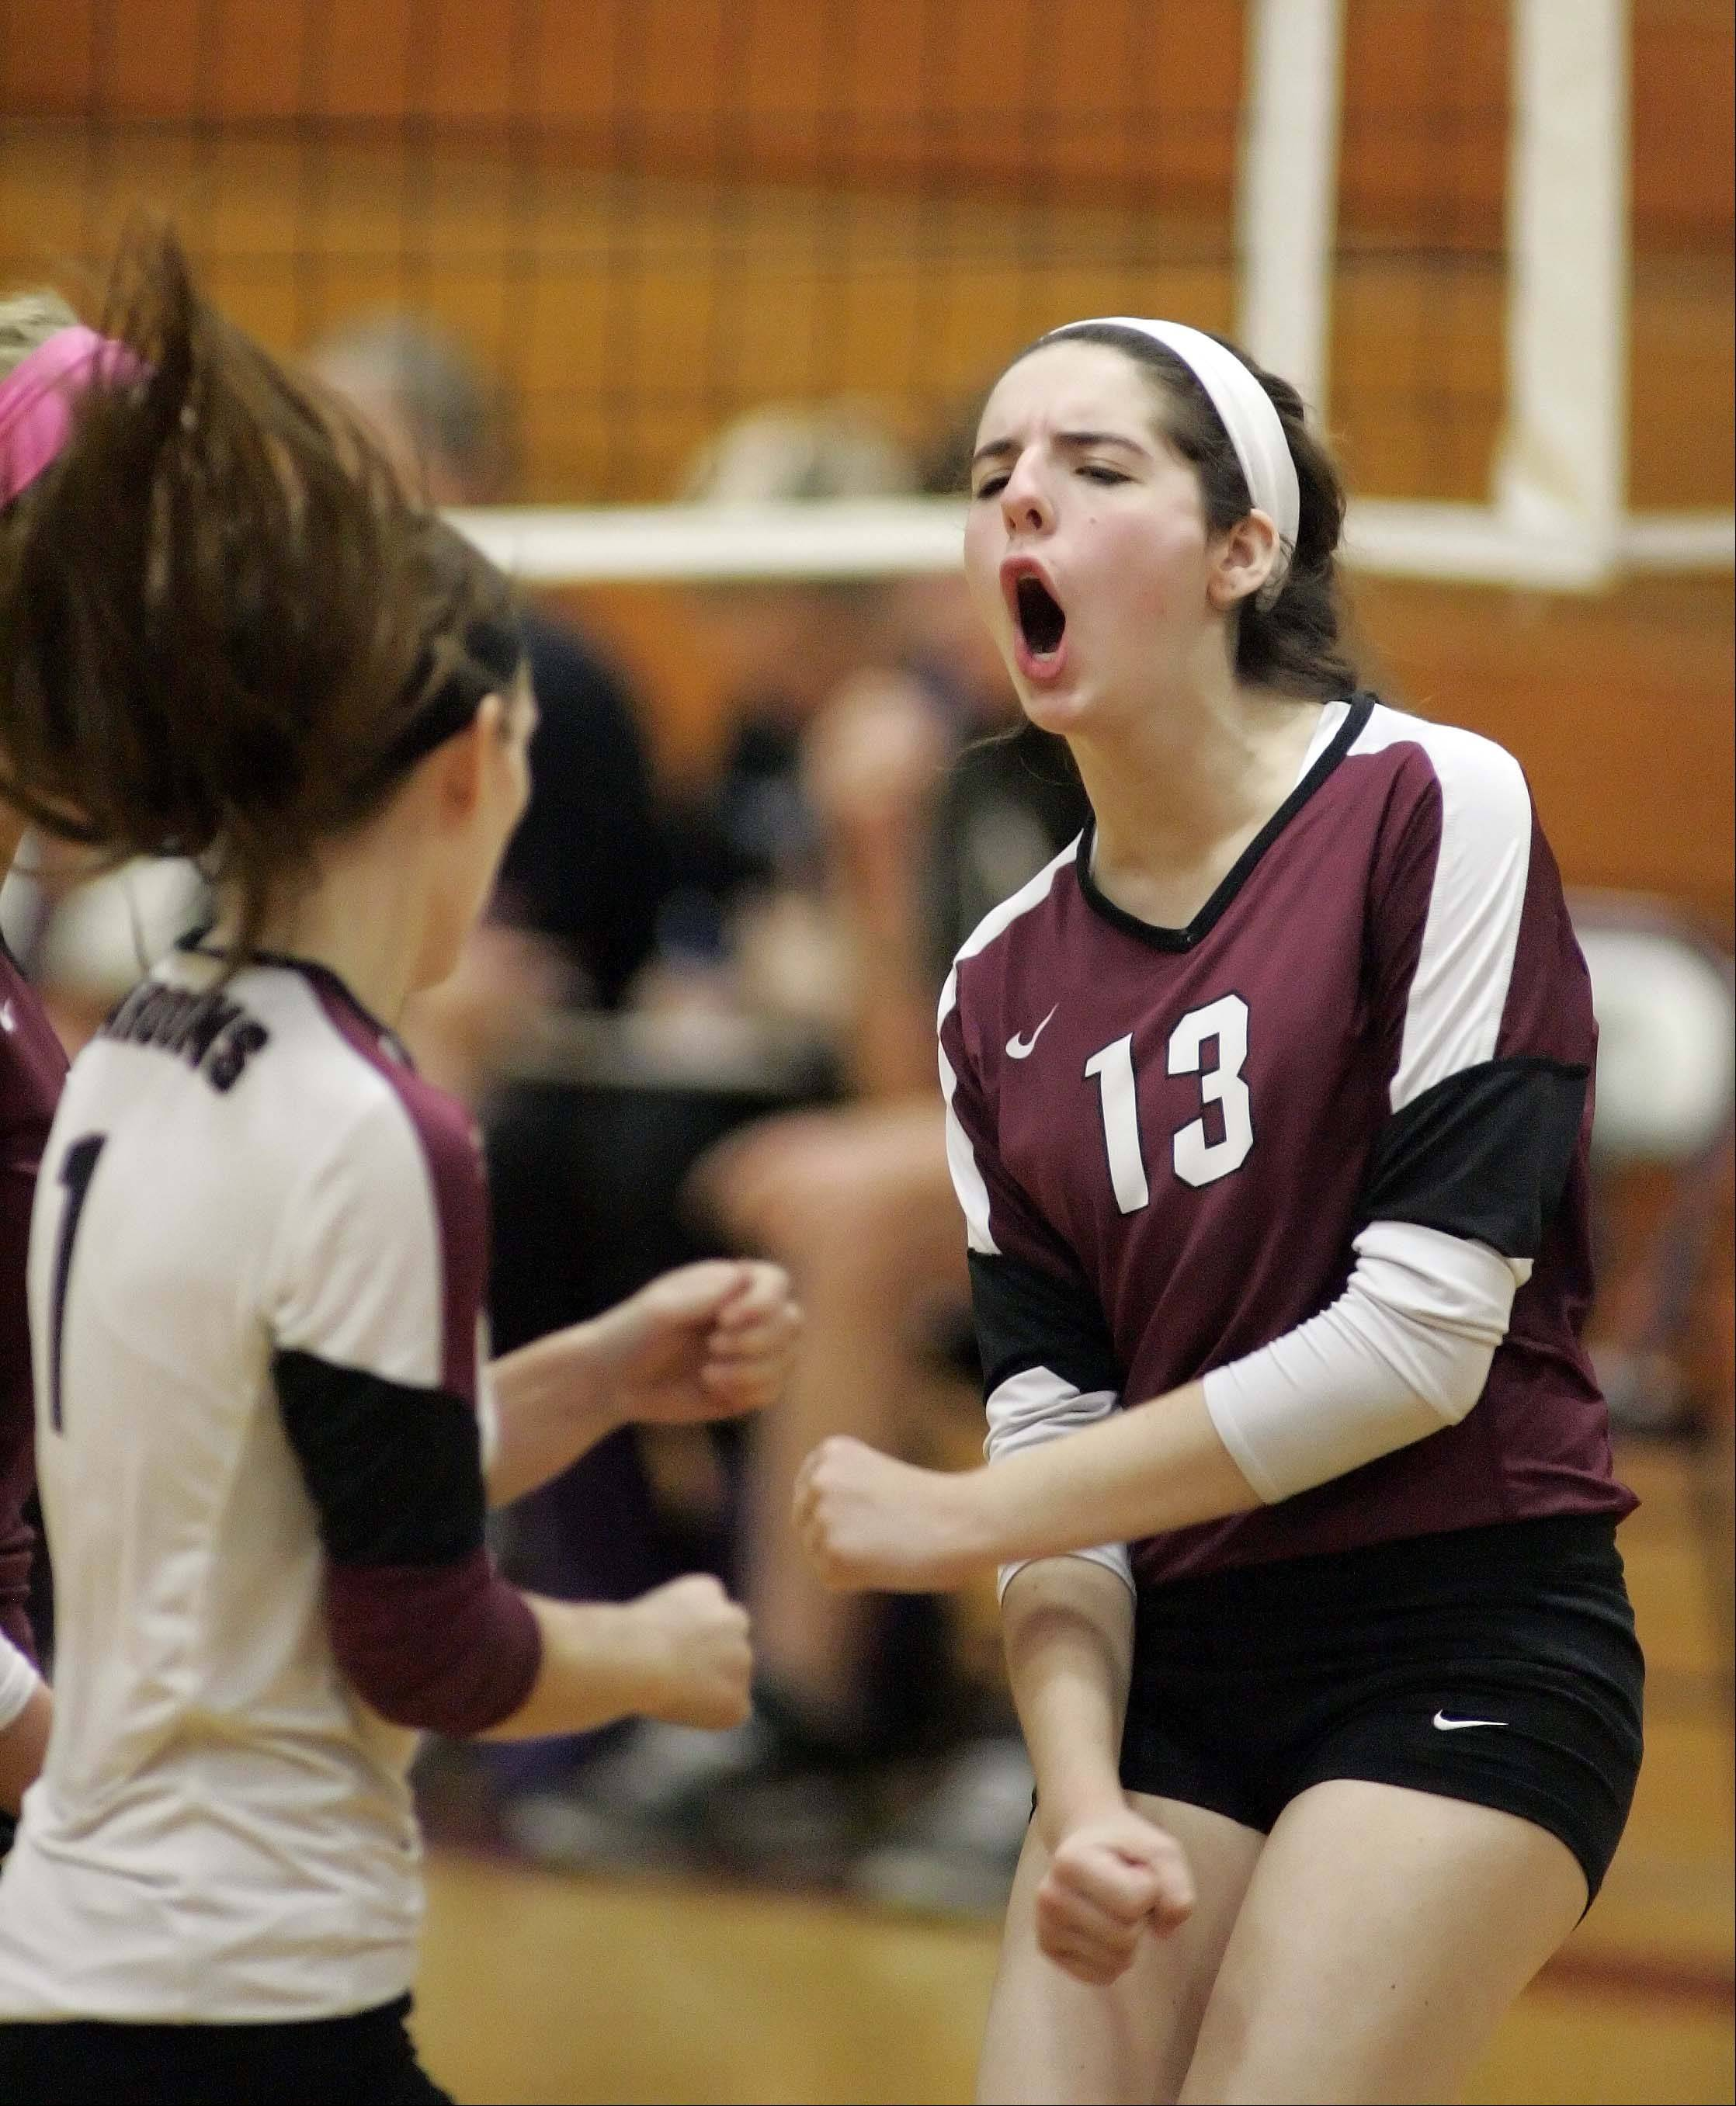 Elgin's Sarah Kish celebrates a point against Rolling Meadows during the Elgin High School Lady Maroons 22nd annual varsity invitational volleyball tournament Saturday at Chesbrough Field House.